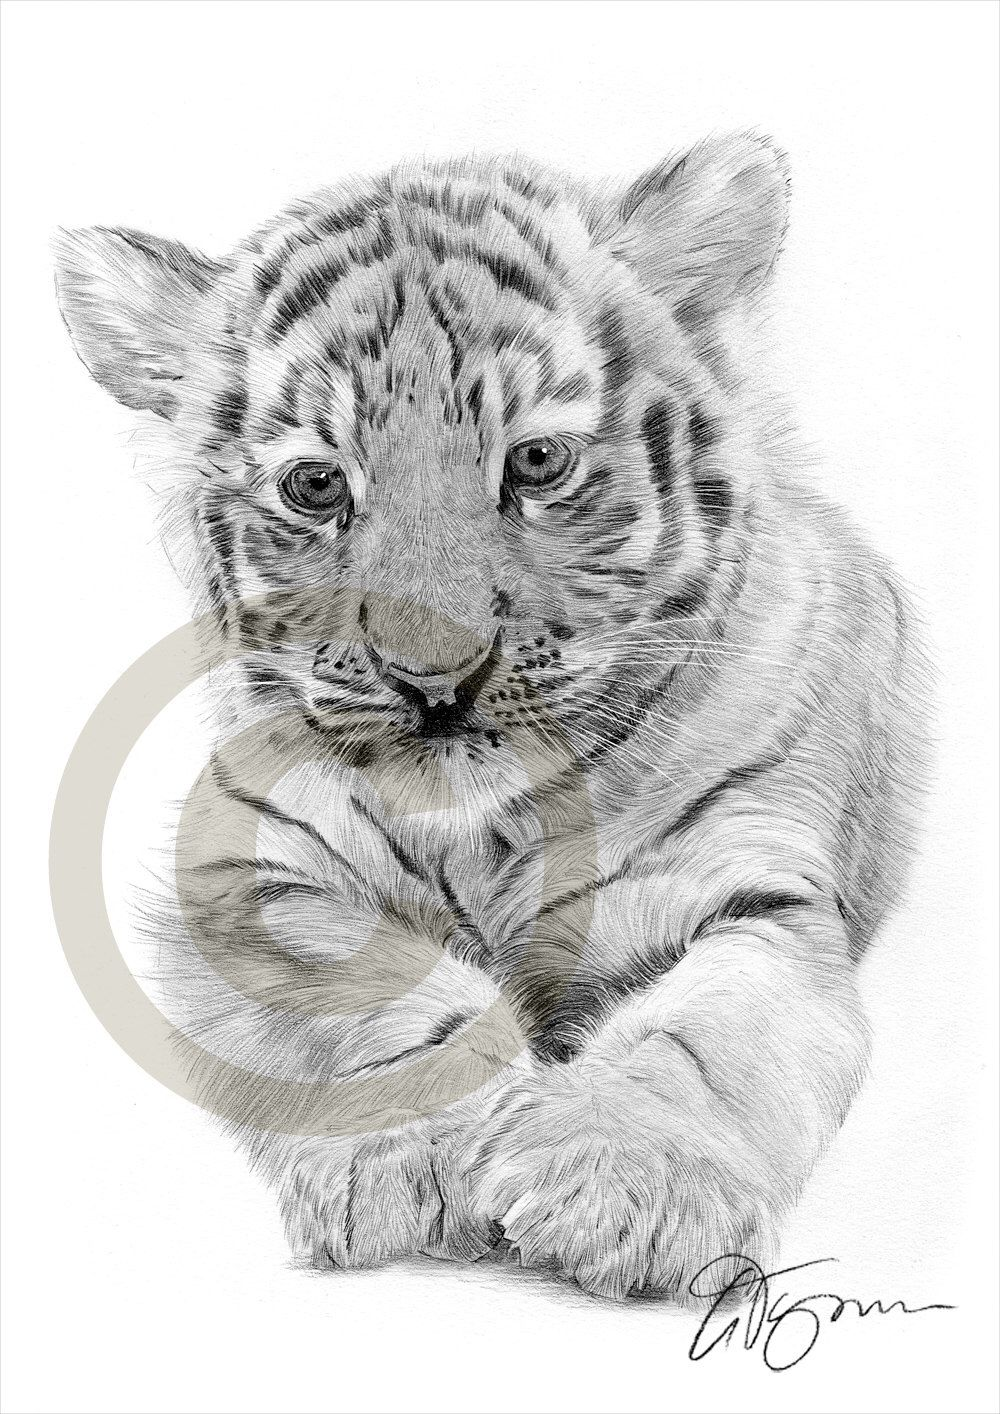 African bengal tiger cub pencil drawing print a4 size artwork signed by artist gary